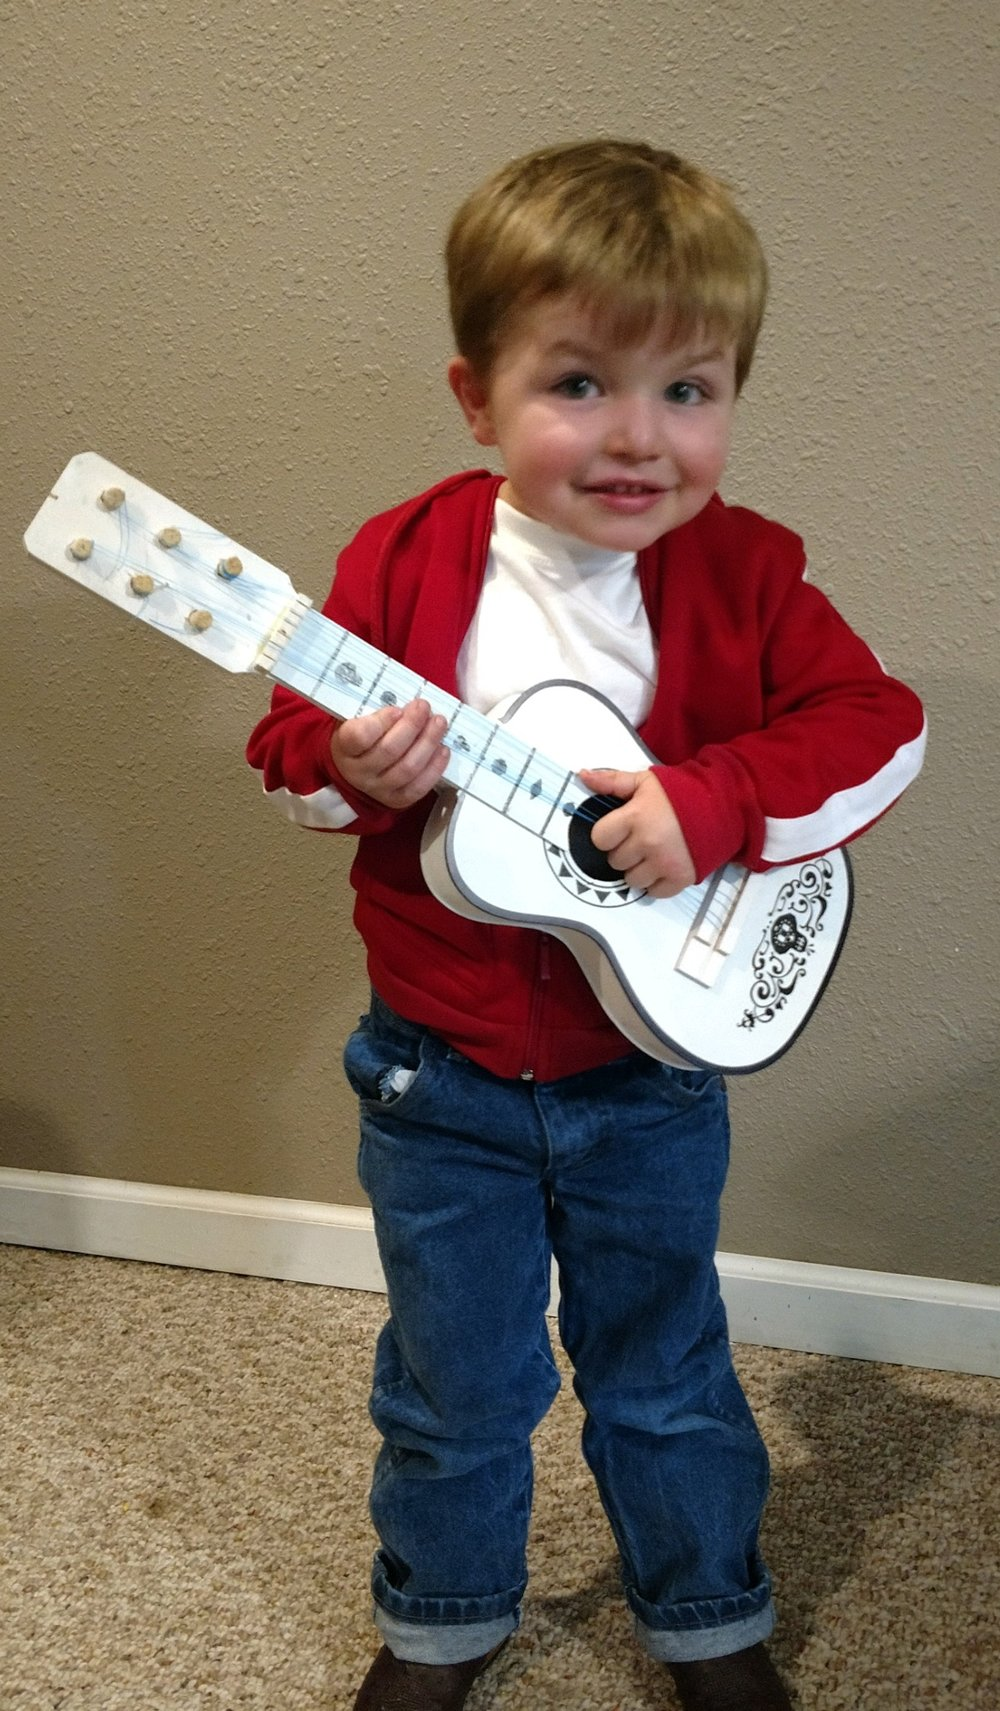 """Copy of Bryar Watkins, Age 3, Mountainburg, AR, Perthes (left hip), """"Miguel from Coco"""""""